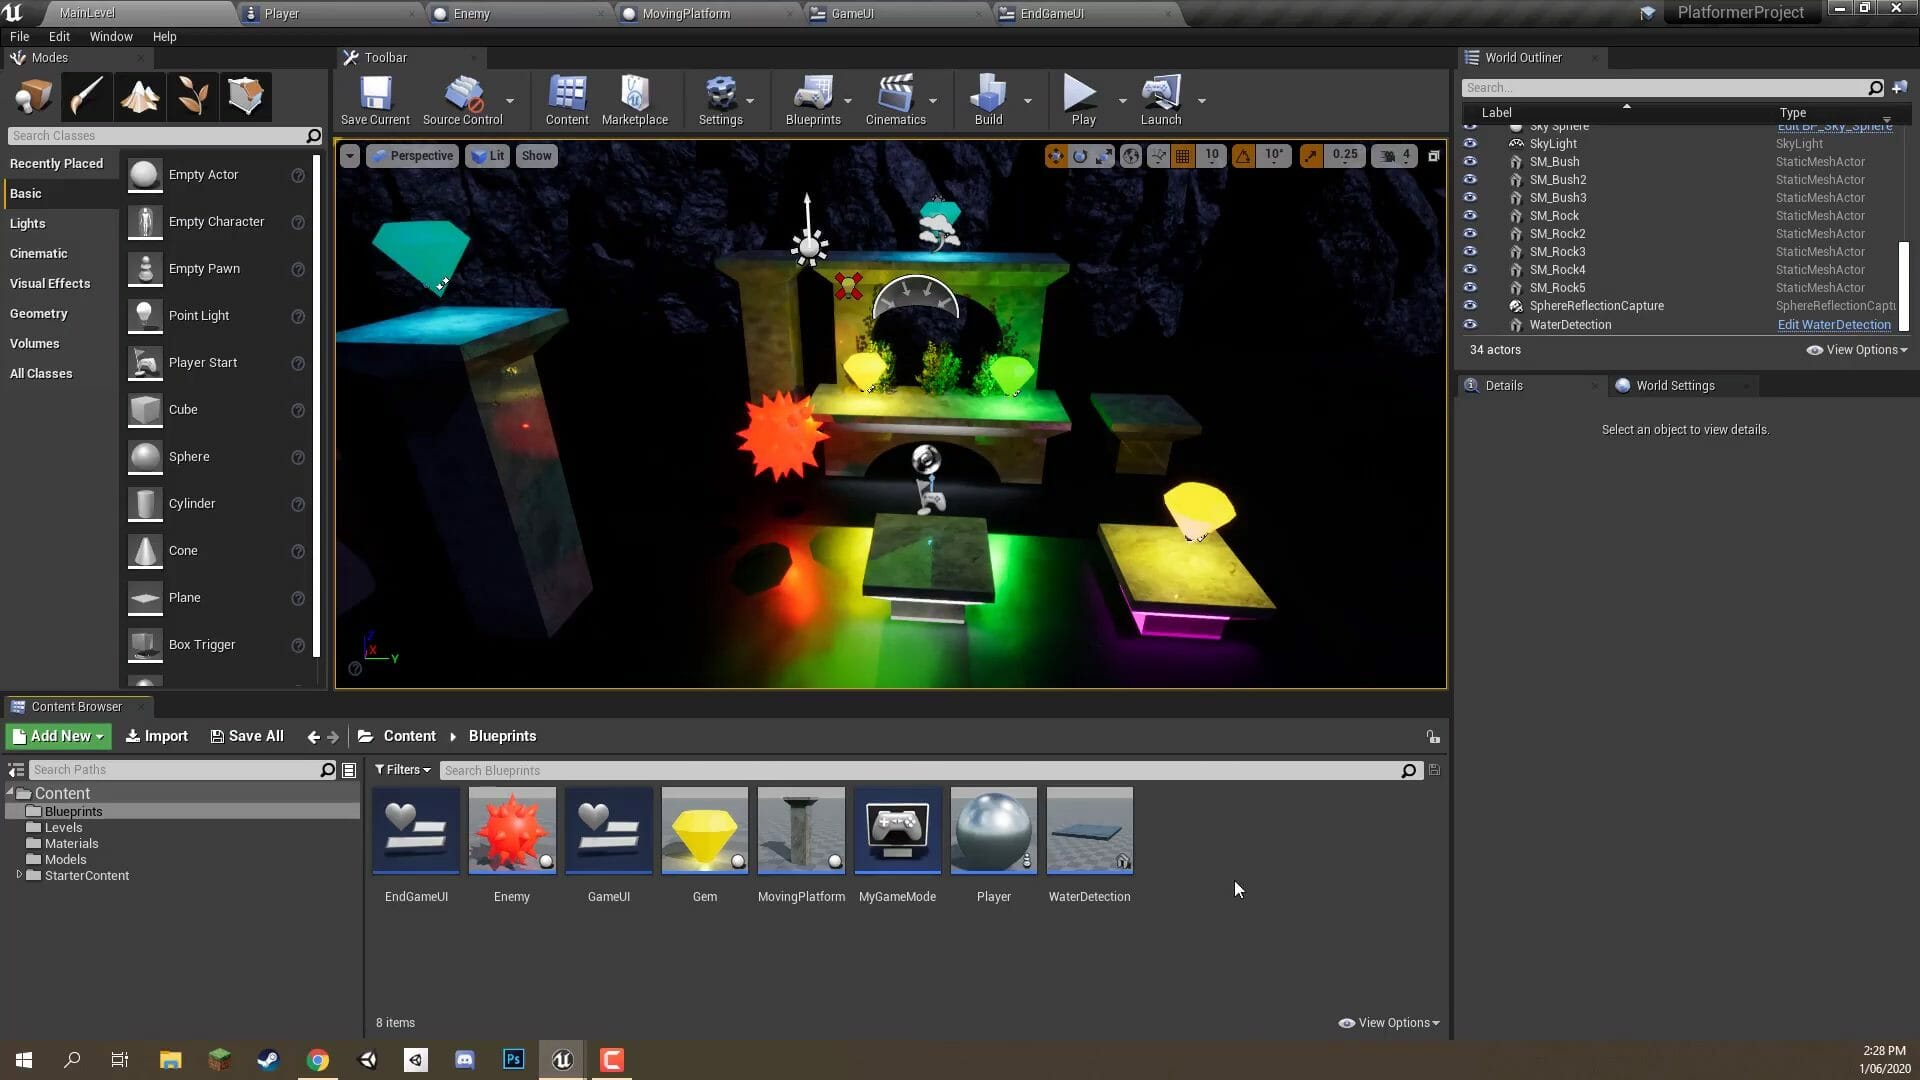 Creating a 3D game in the Unreal Engine.